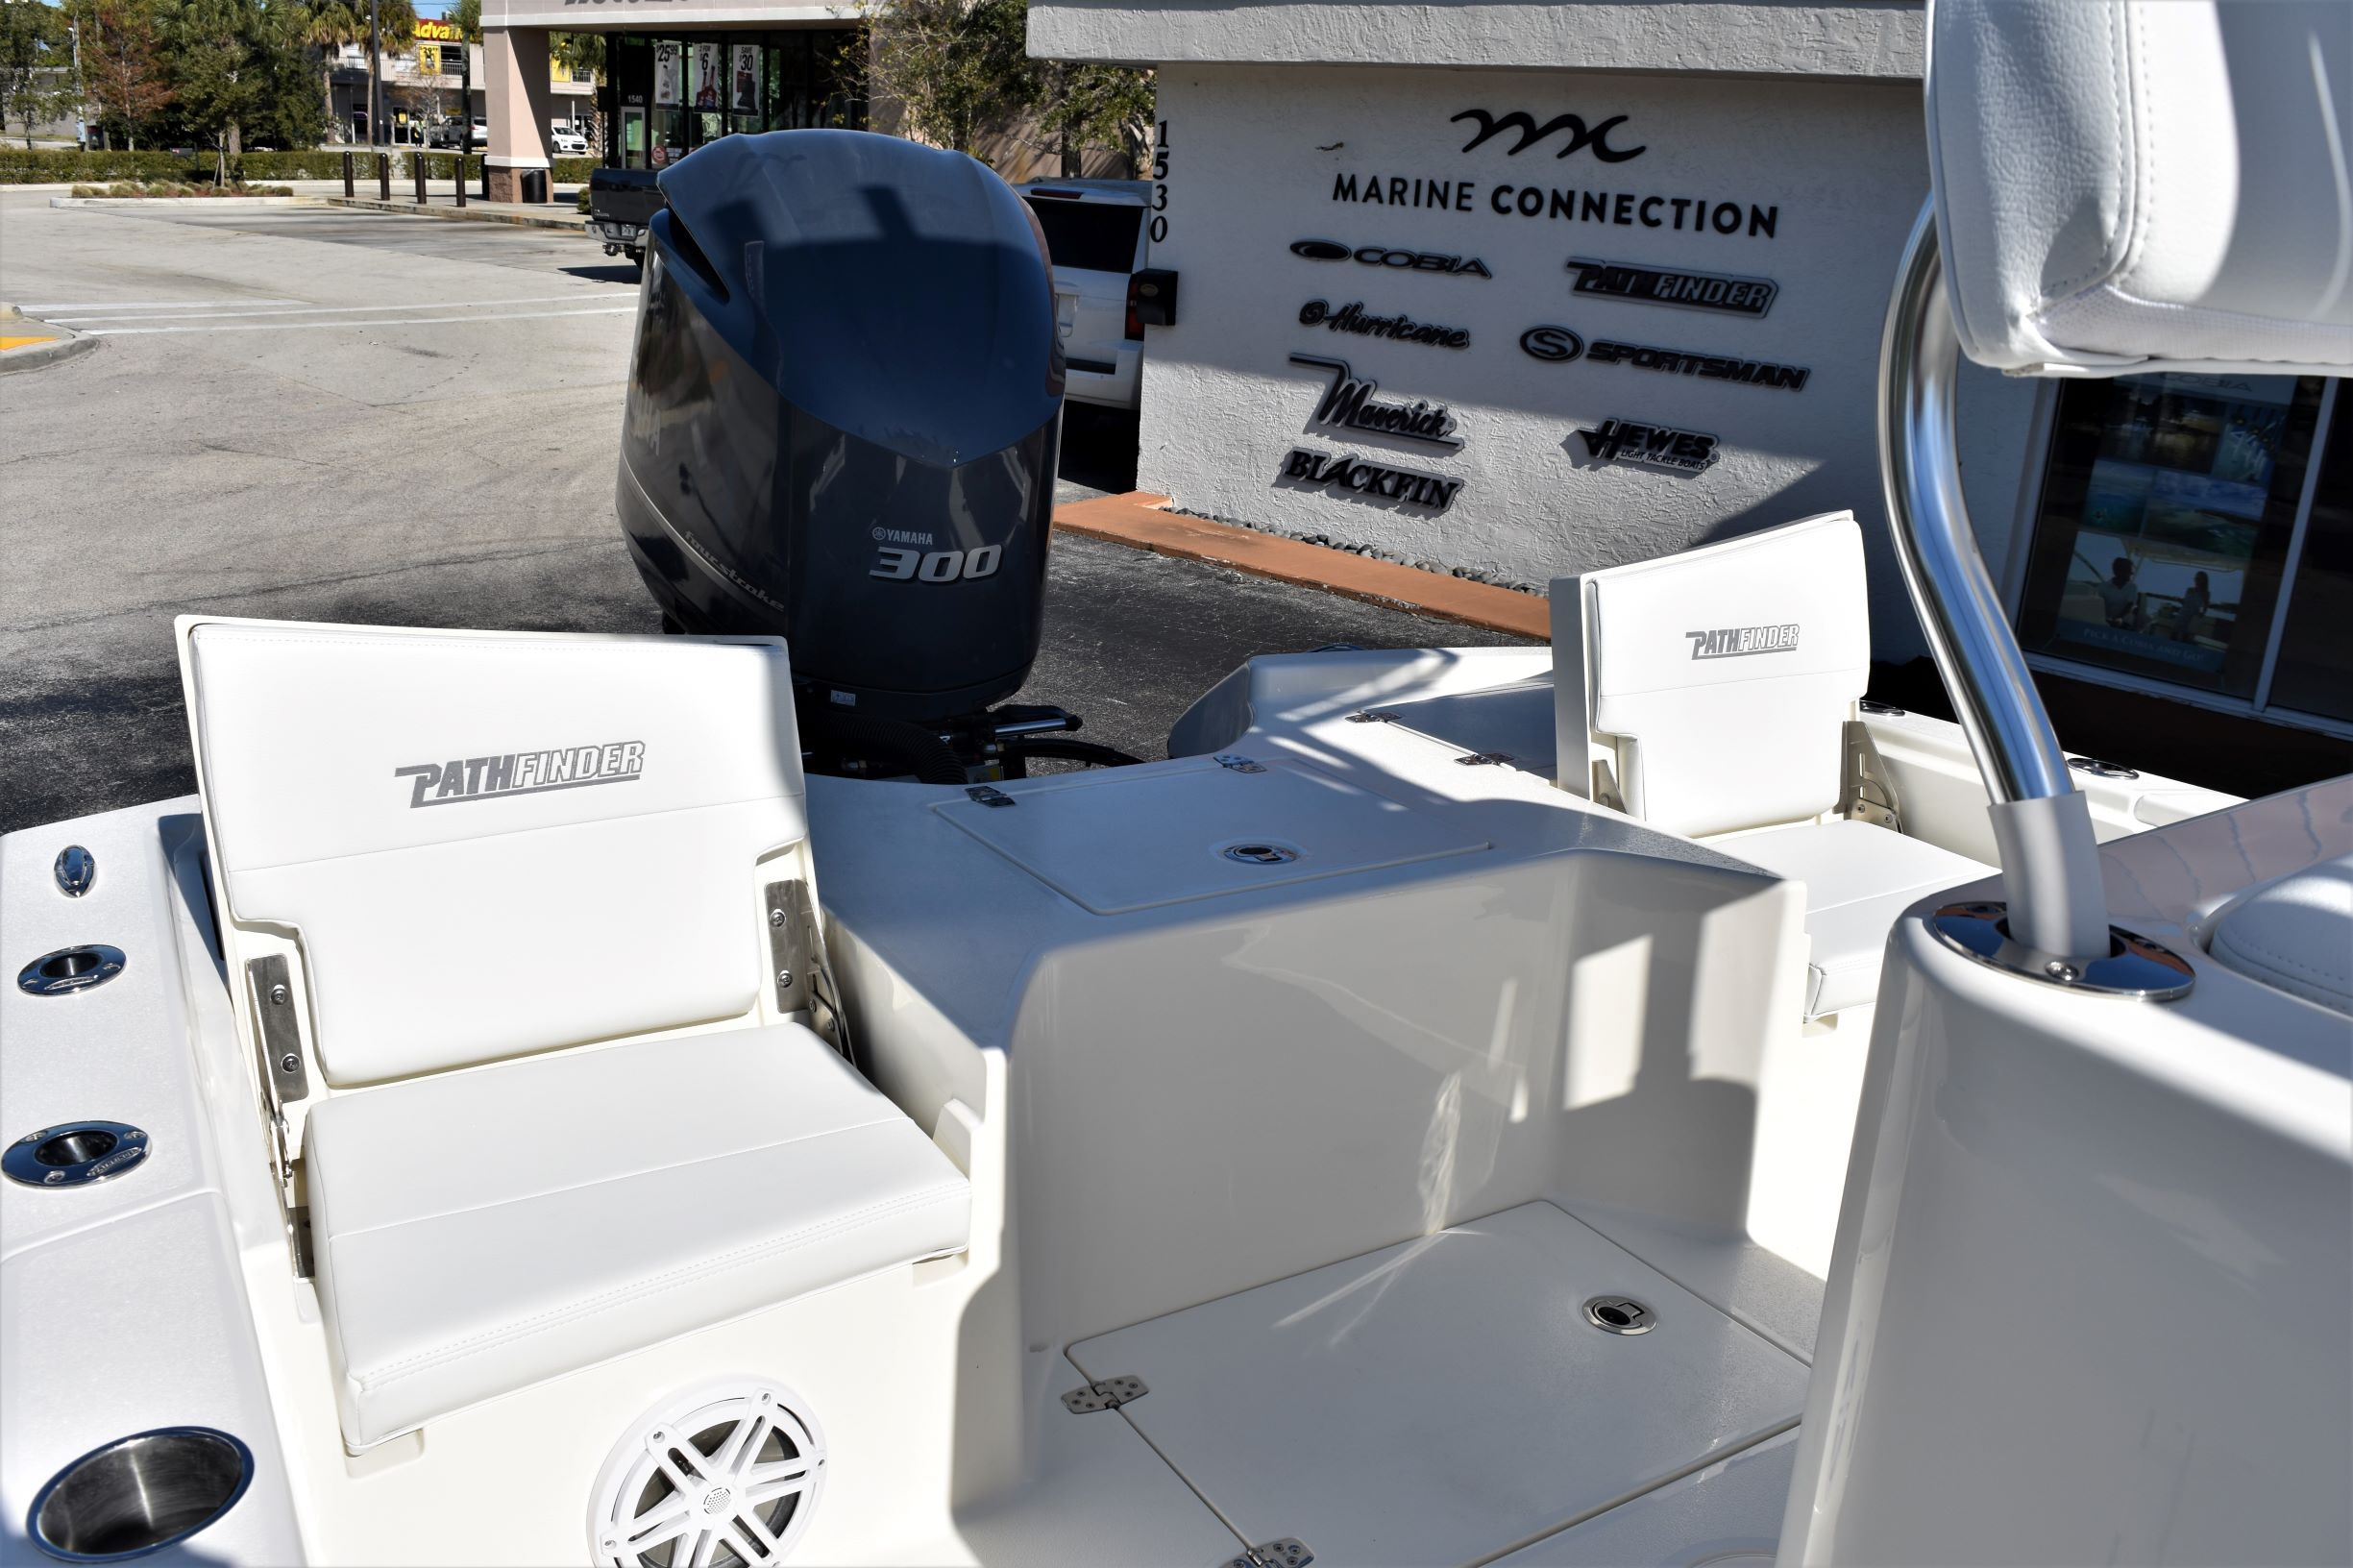 Thumbnail 25 for New 2020 Pathfinder 2500 Hybrid Bay Boat boat for sale in Vero Beach, FL